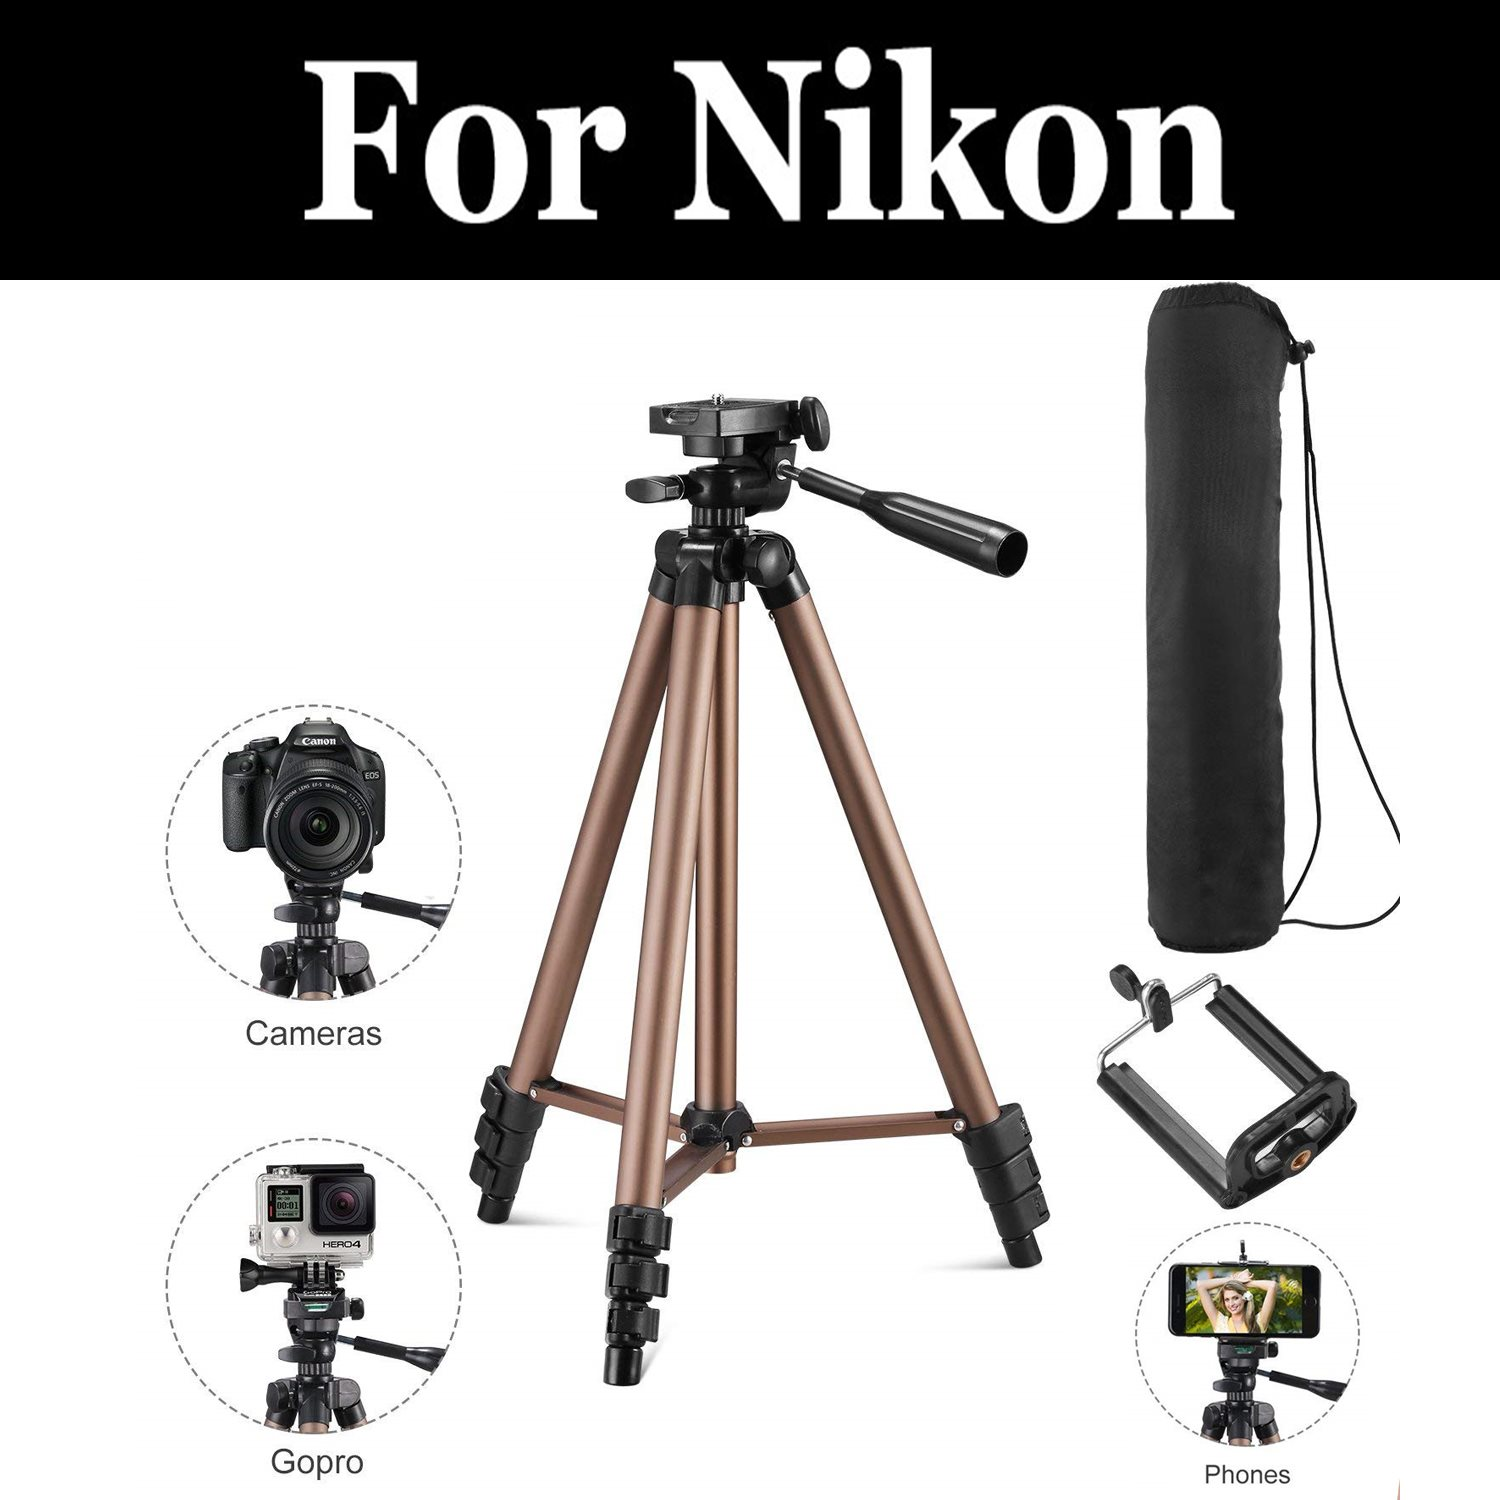 Professional Aluminum Travel Tripod&Ball Head Portable For Nikon D5100 D5200 D5300 D5500 D5600 D600 D610 D7000 D7100 D7200